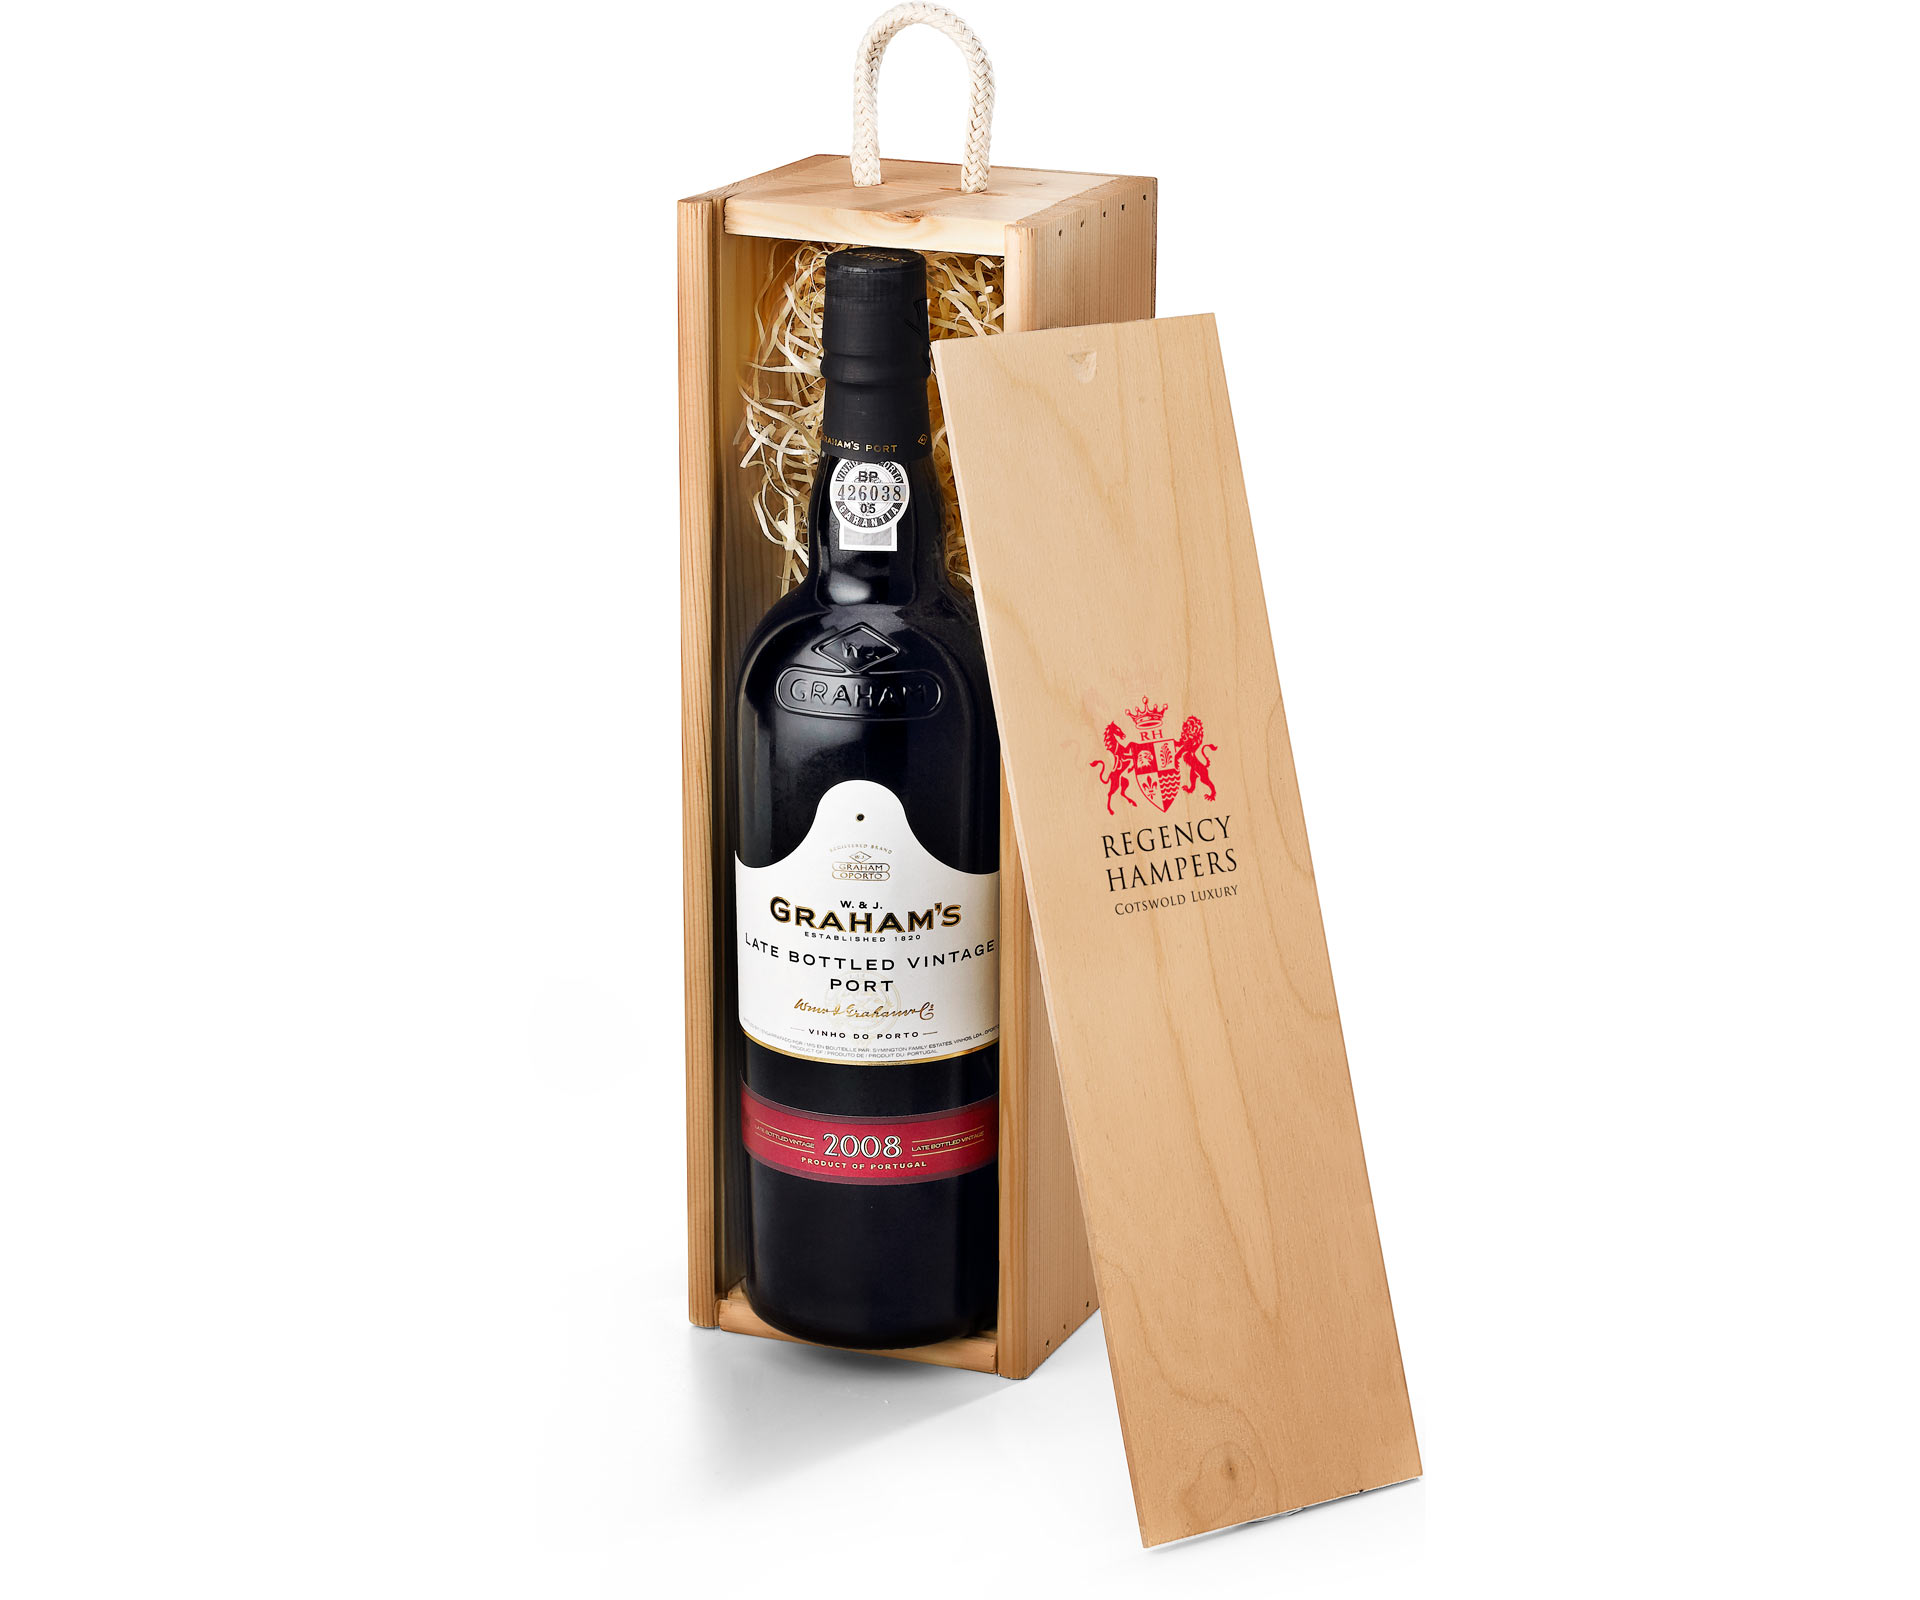 Grahams Lbv Port In Wooden Gift Box Regency Hampers